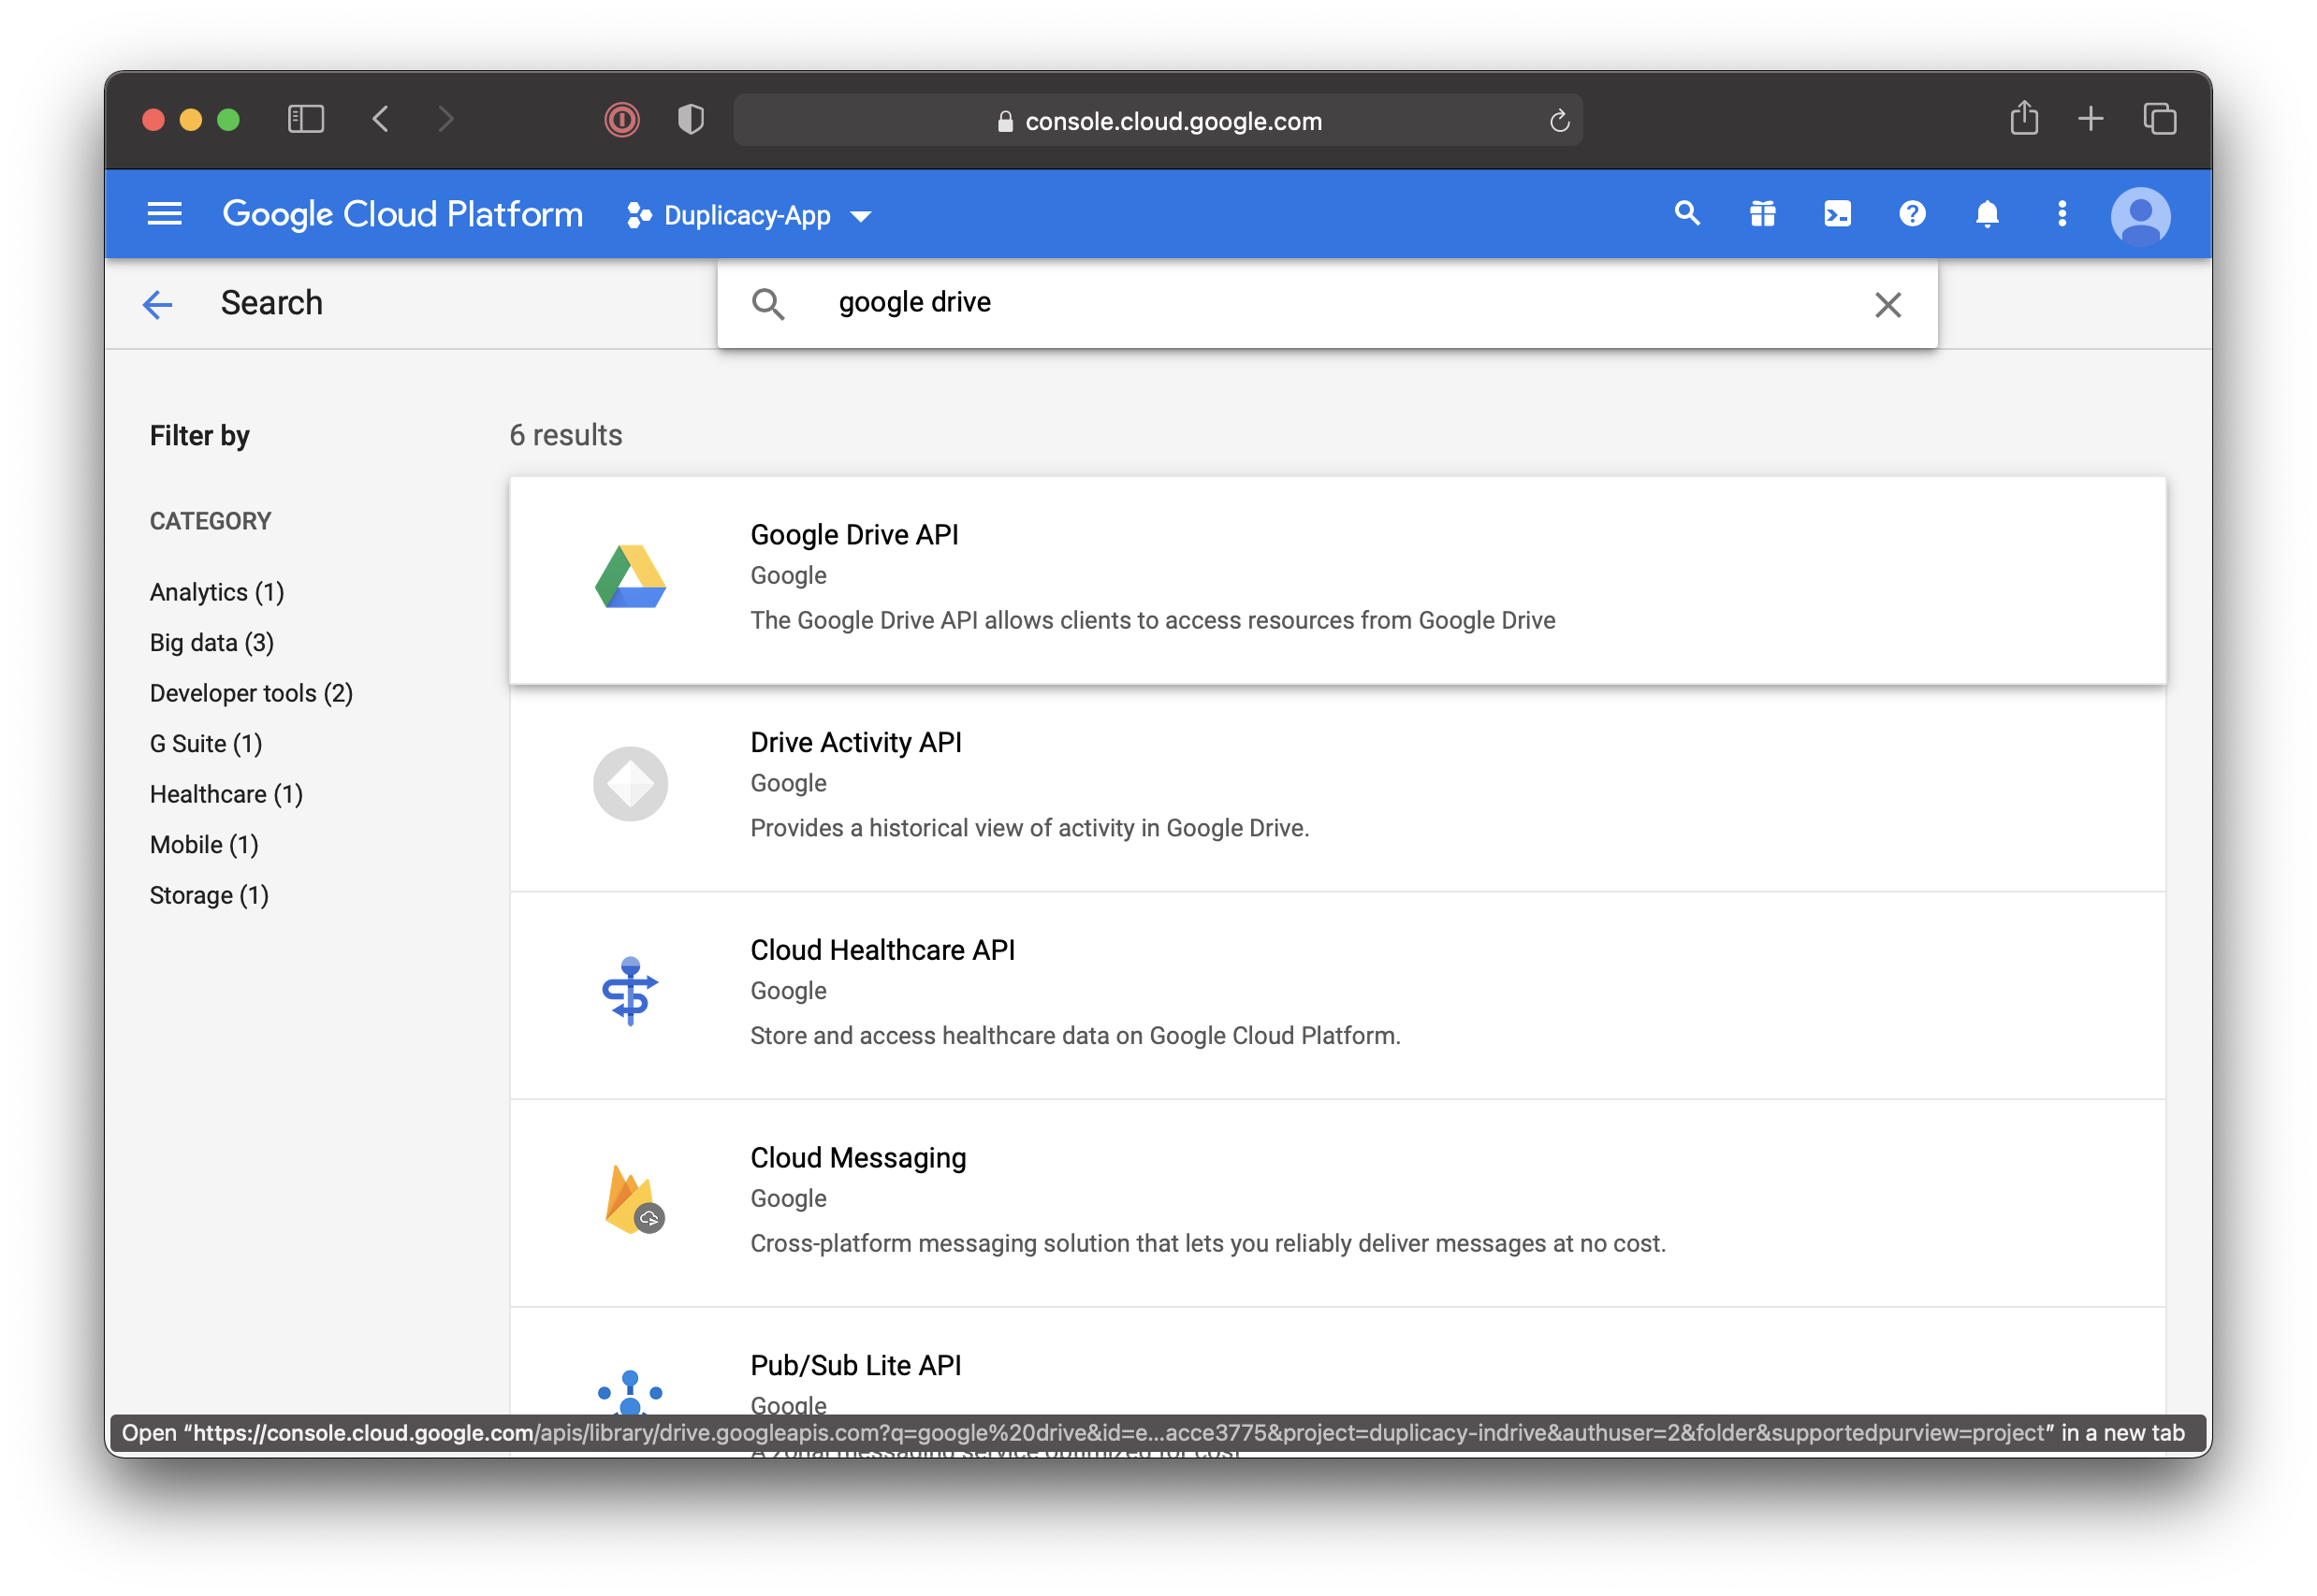 Search for Google Drive